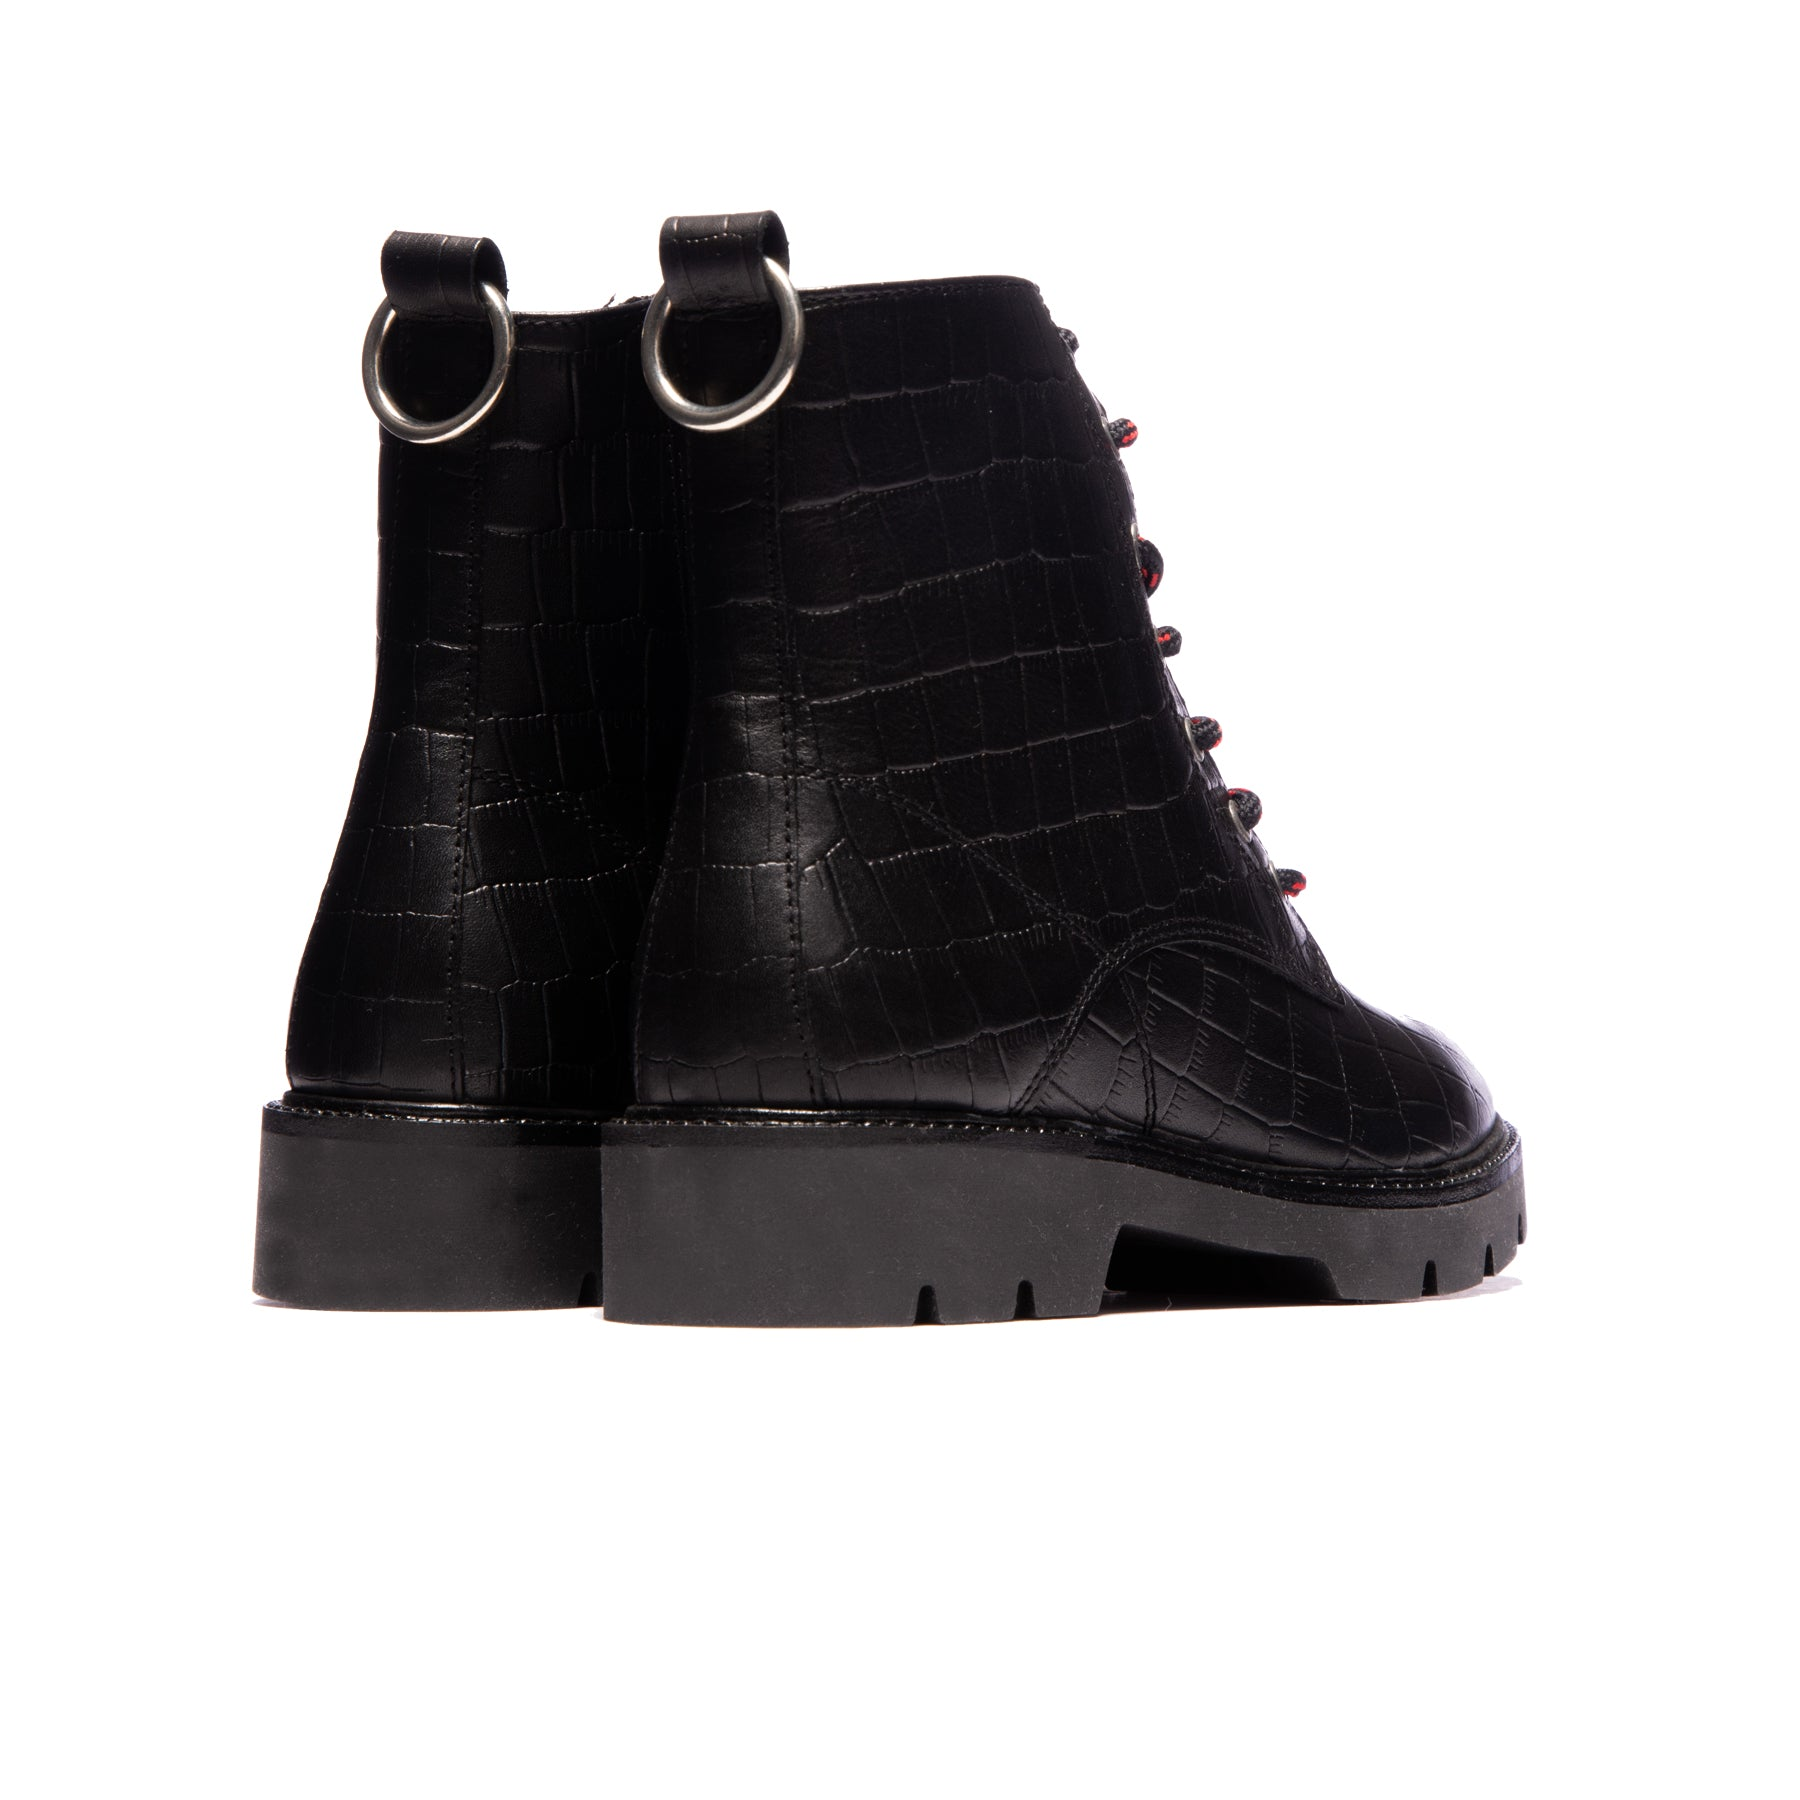 Gene Black Croco Leather